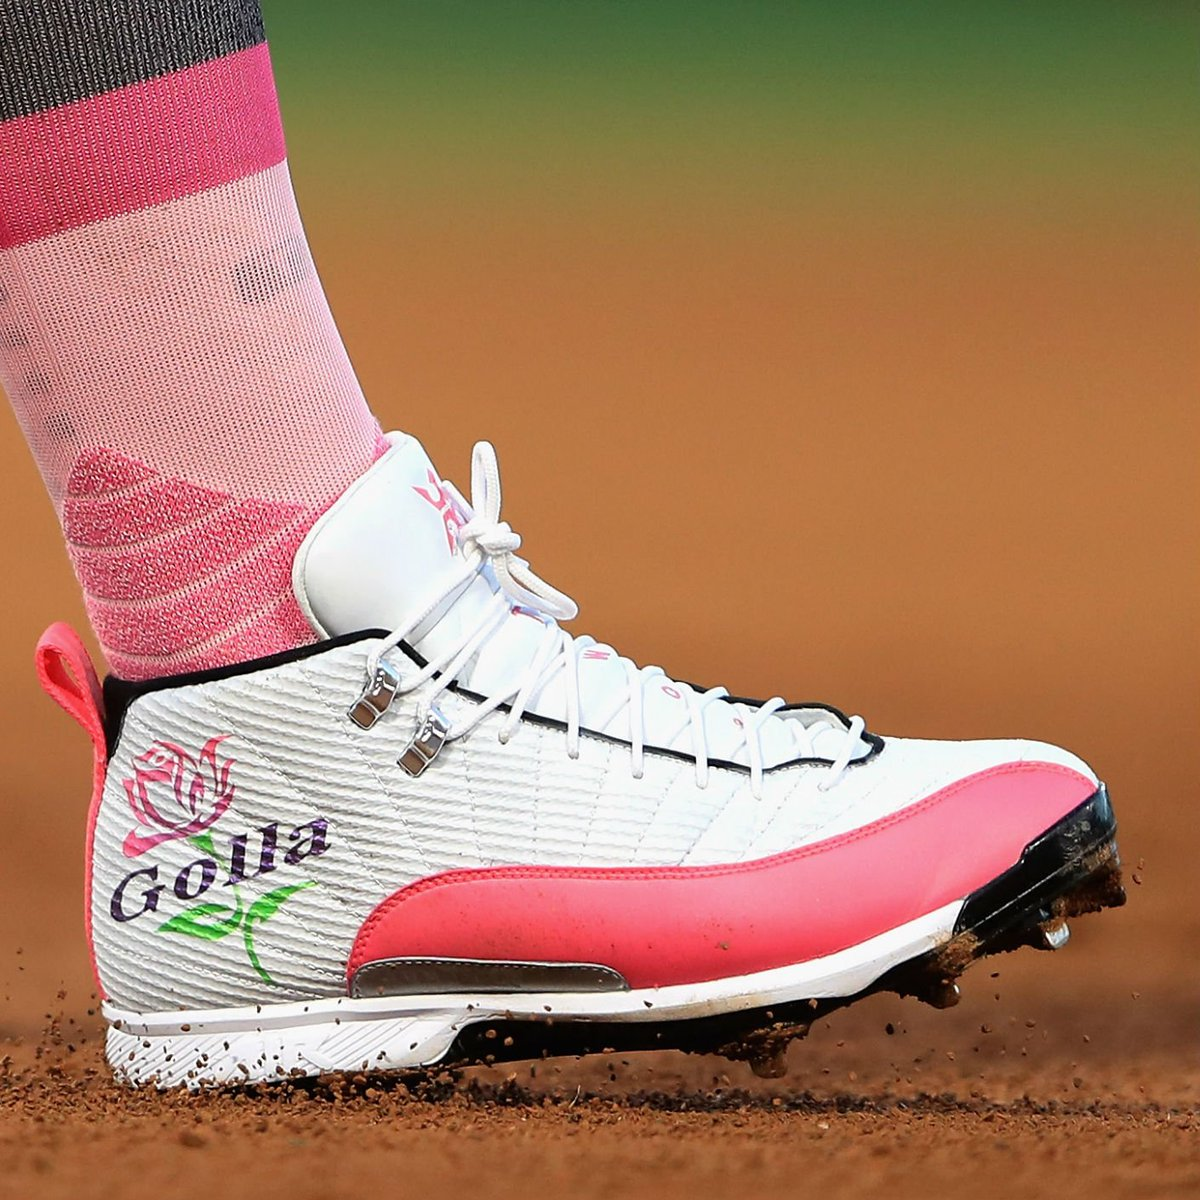 0bfc35b3396 solewatch miguelcabrera wearing custom air jordan 12 cleats by sotocustoms  for mother s day